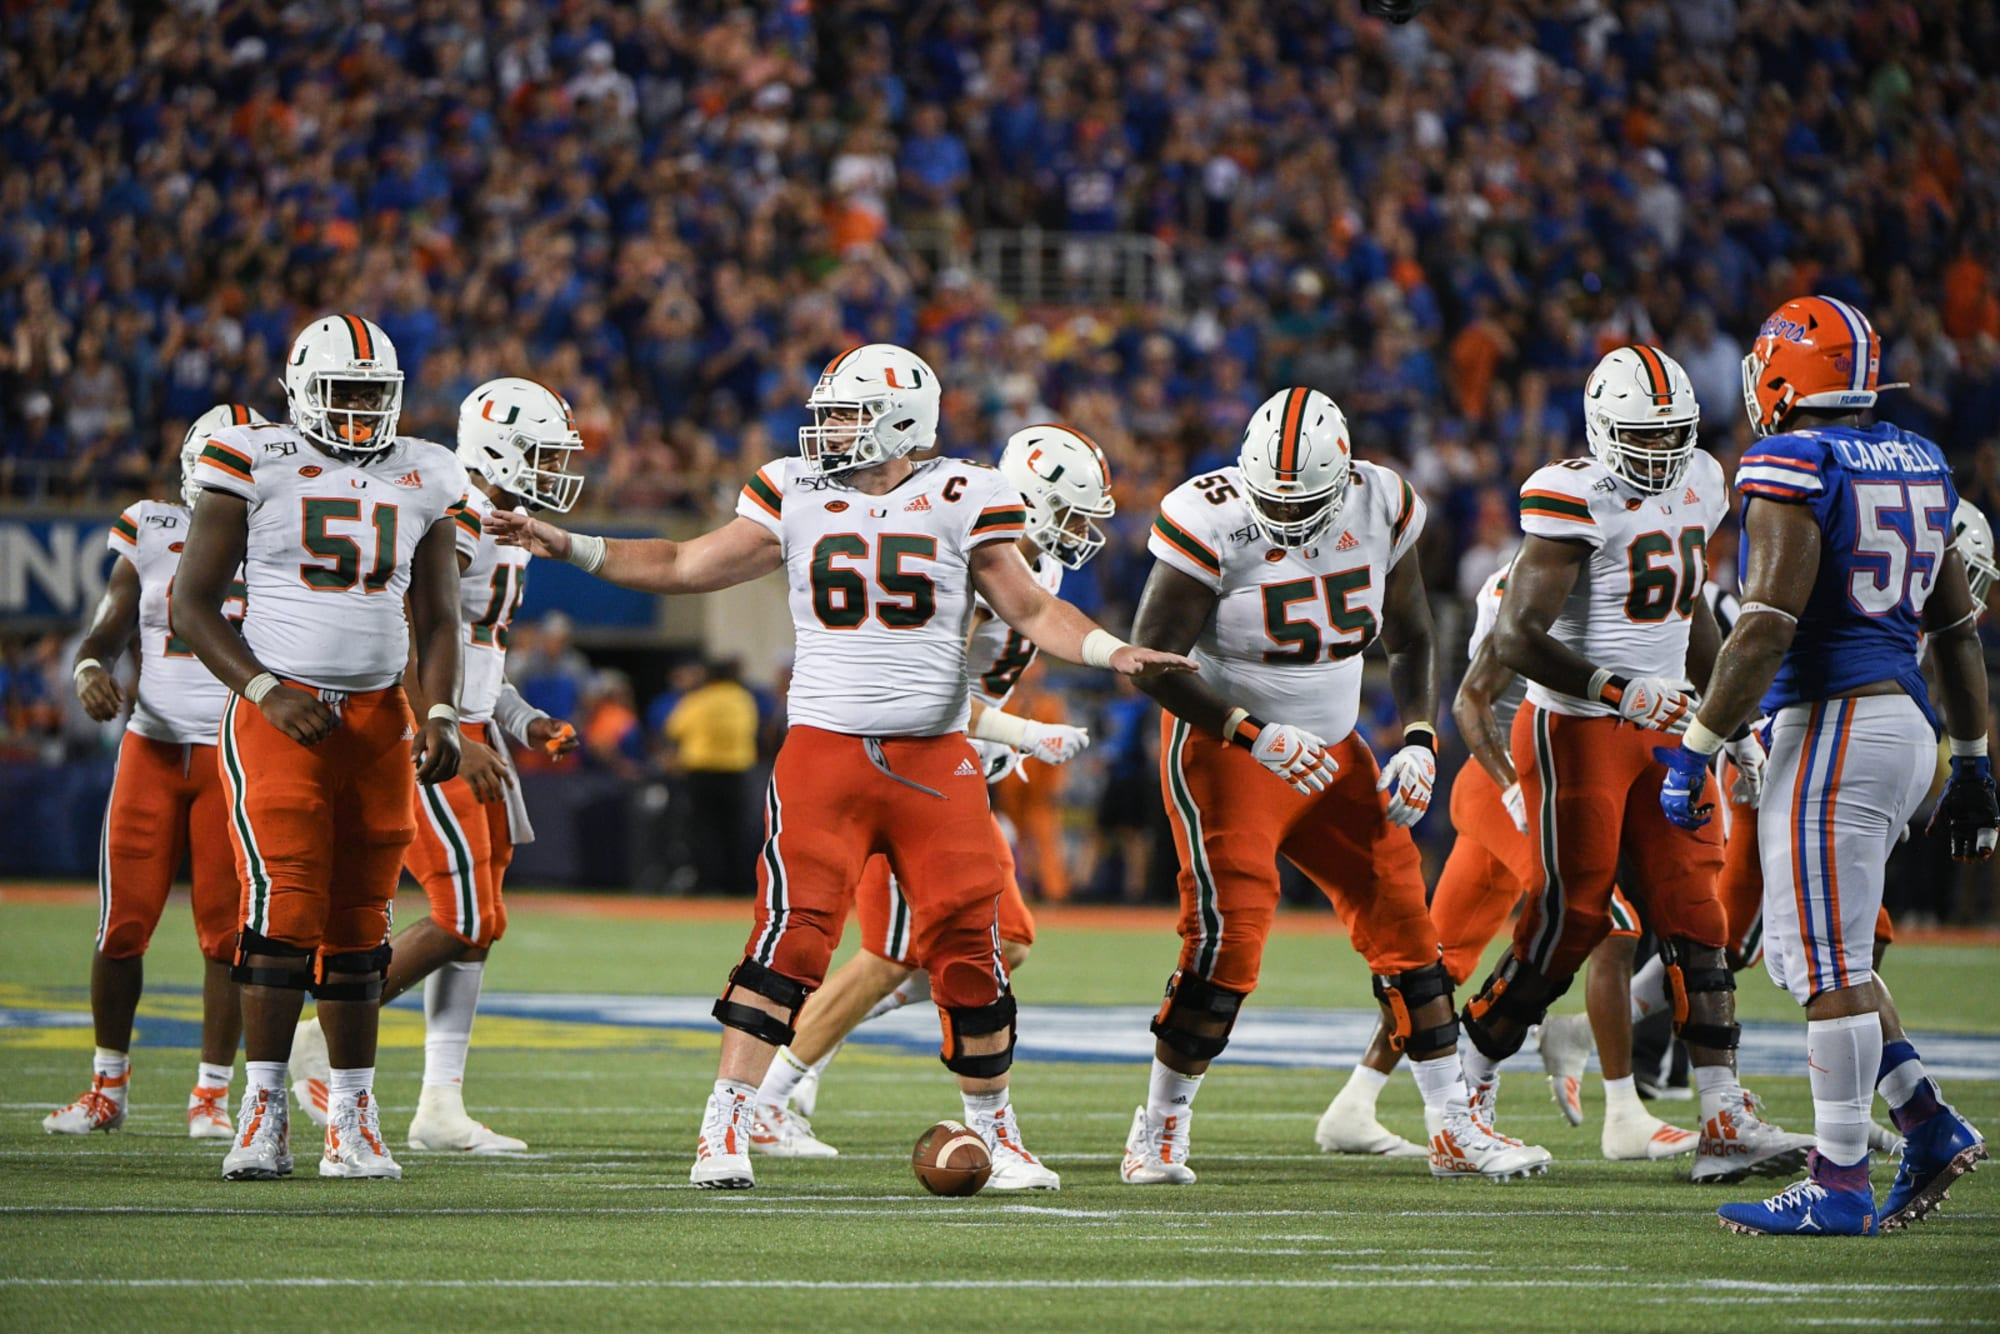 2022 NFL Draft: Miami OT Zion Nelson scouting report and 2021 outlook